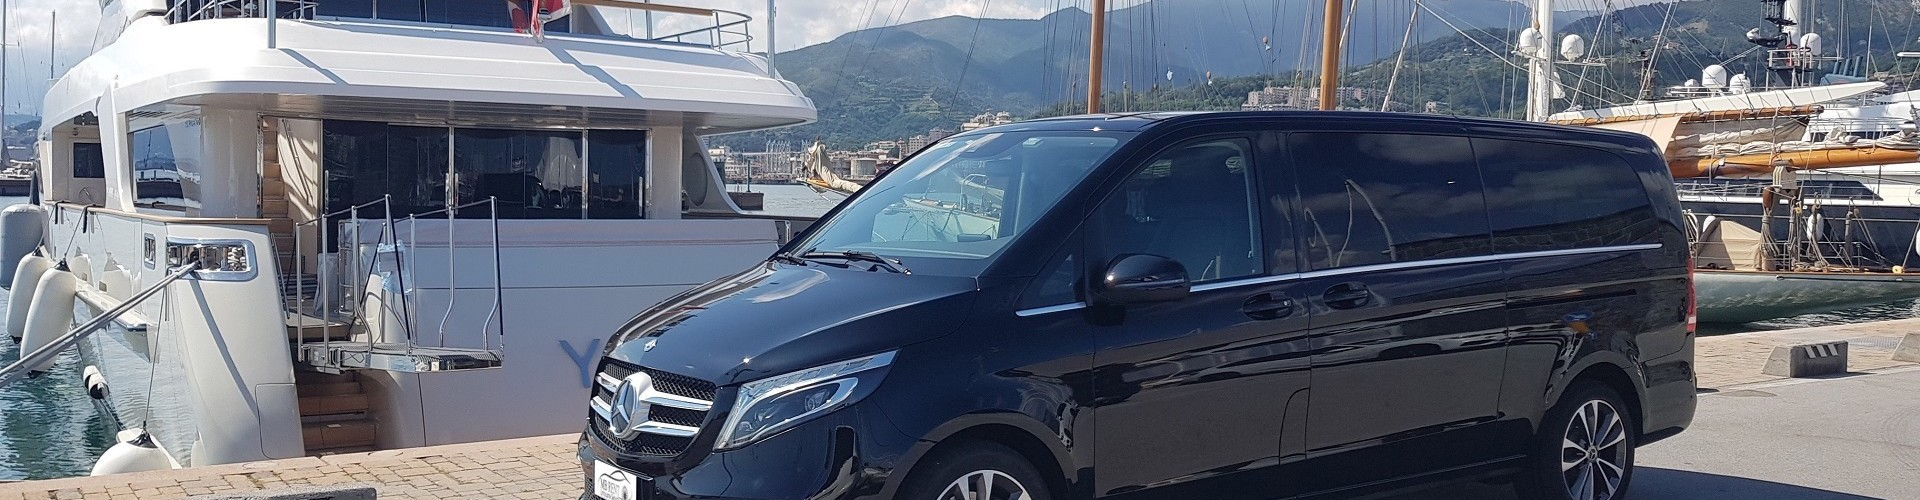 Vip Passenger Transfer from Private Aviation in Genova | Chauffeured Service Italy